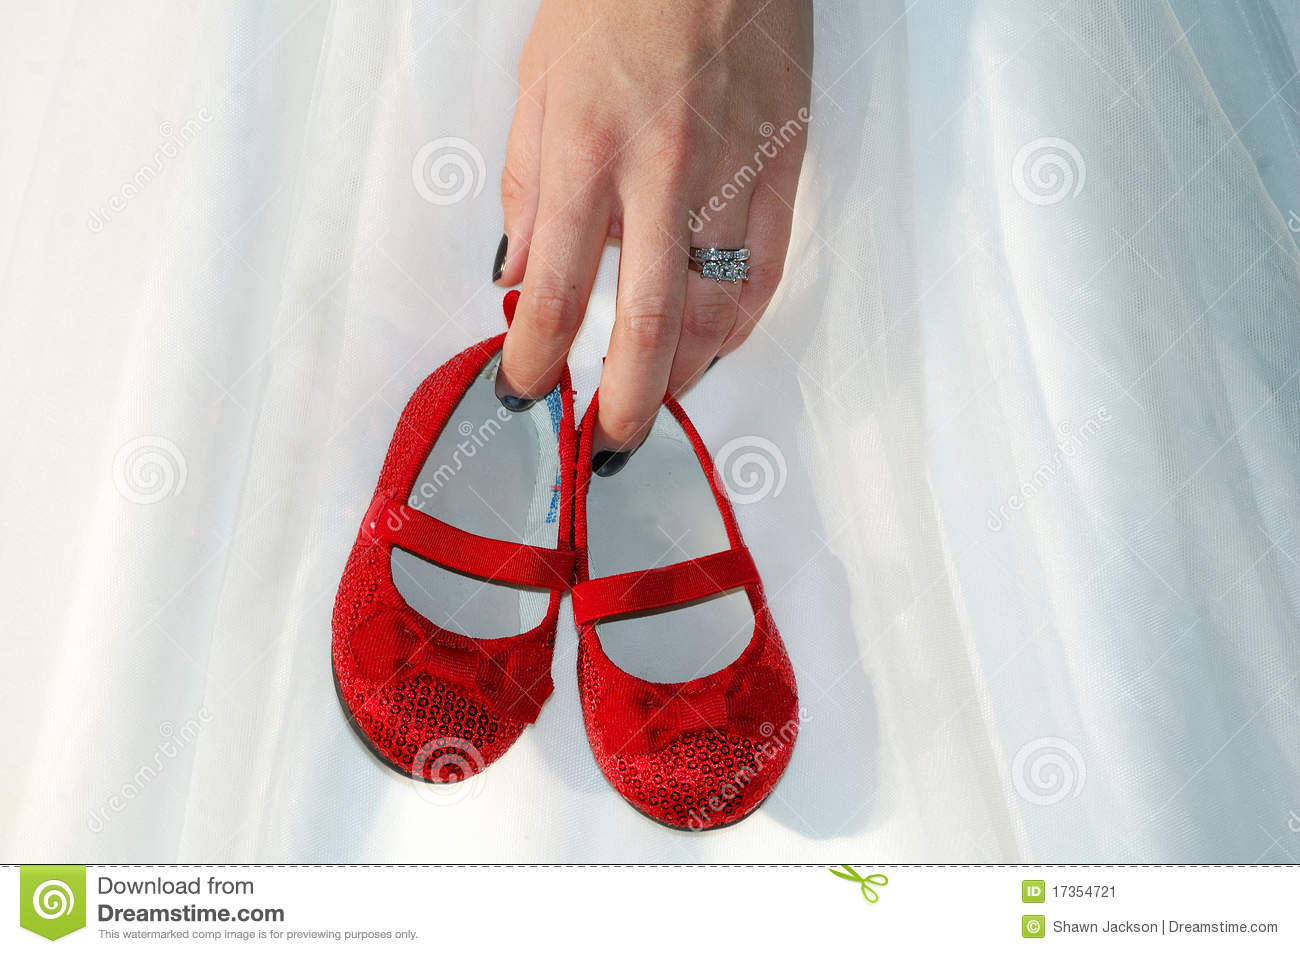 Hand Holding Little Red Shoes Stock Image - Image: 17354721